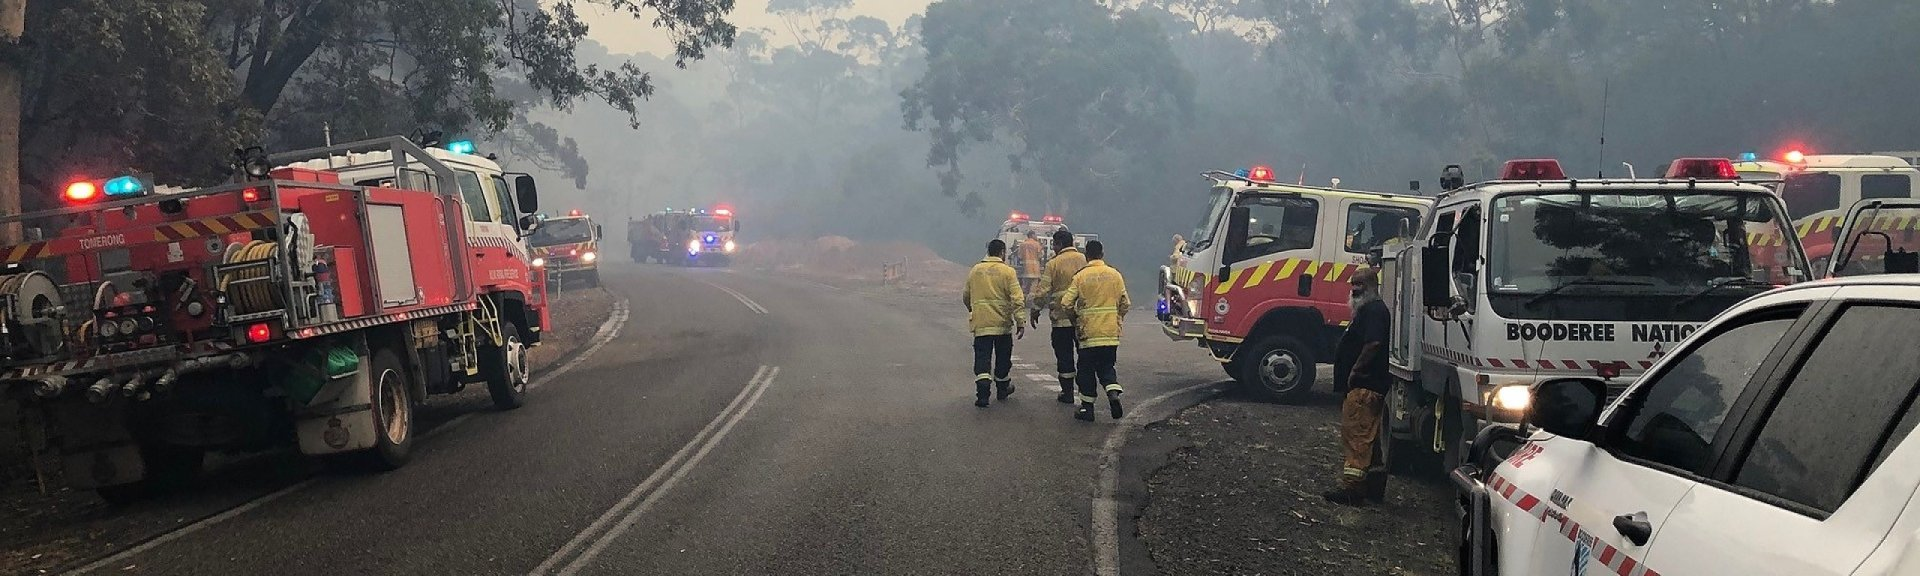 Firefighters at Booderee National Park